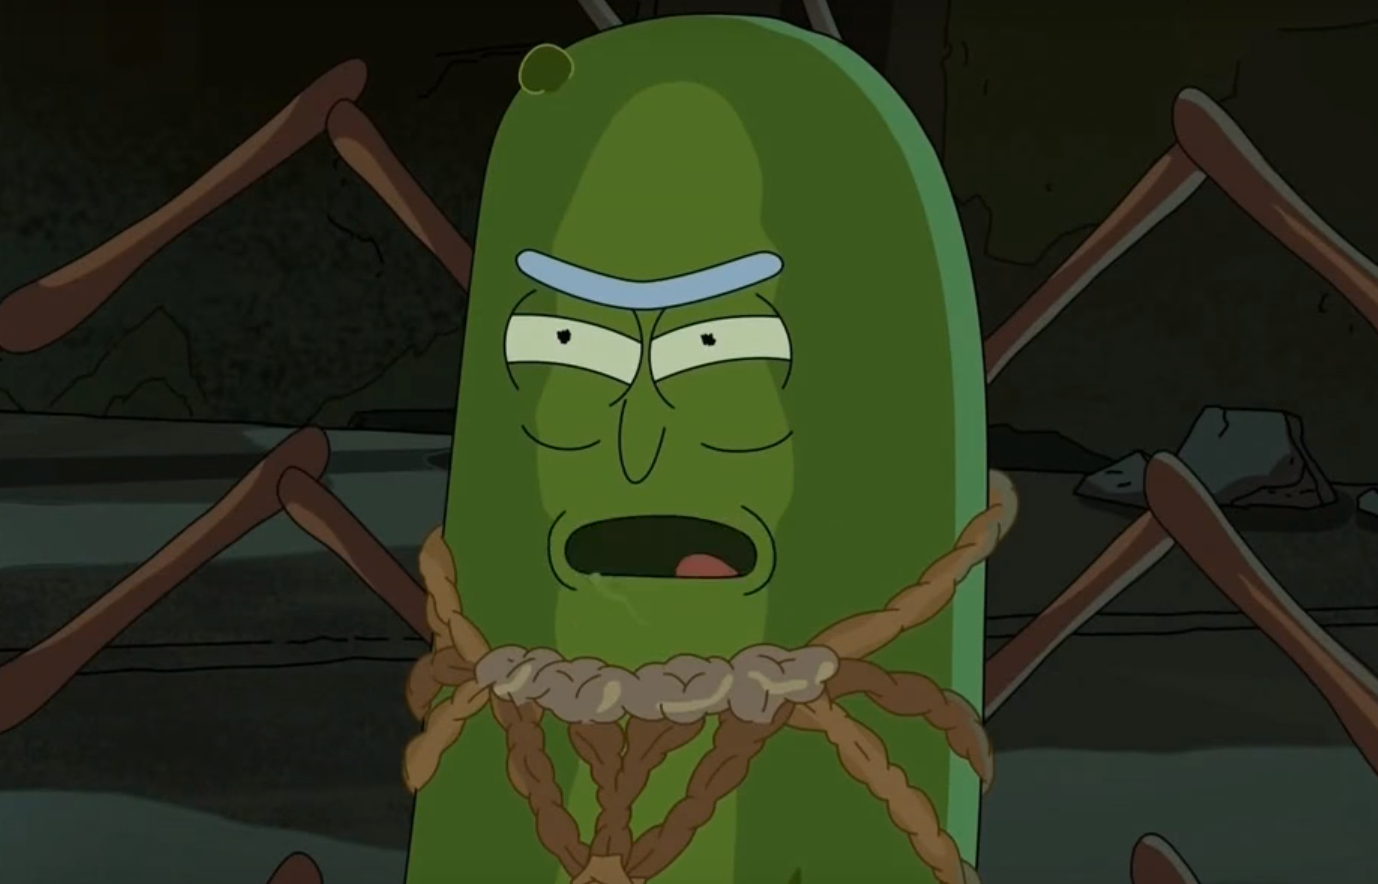 pickle rick and the science of cyborg cockroaches